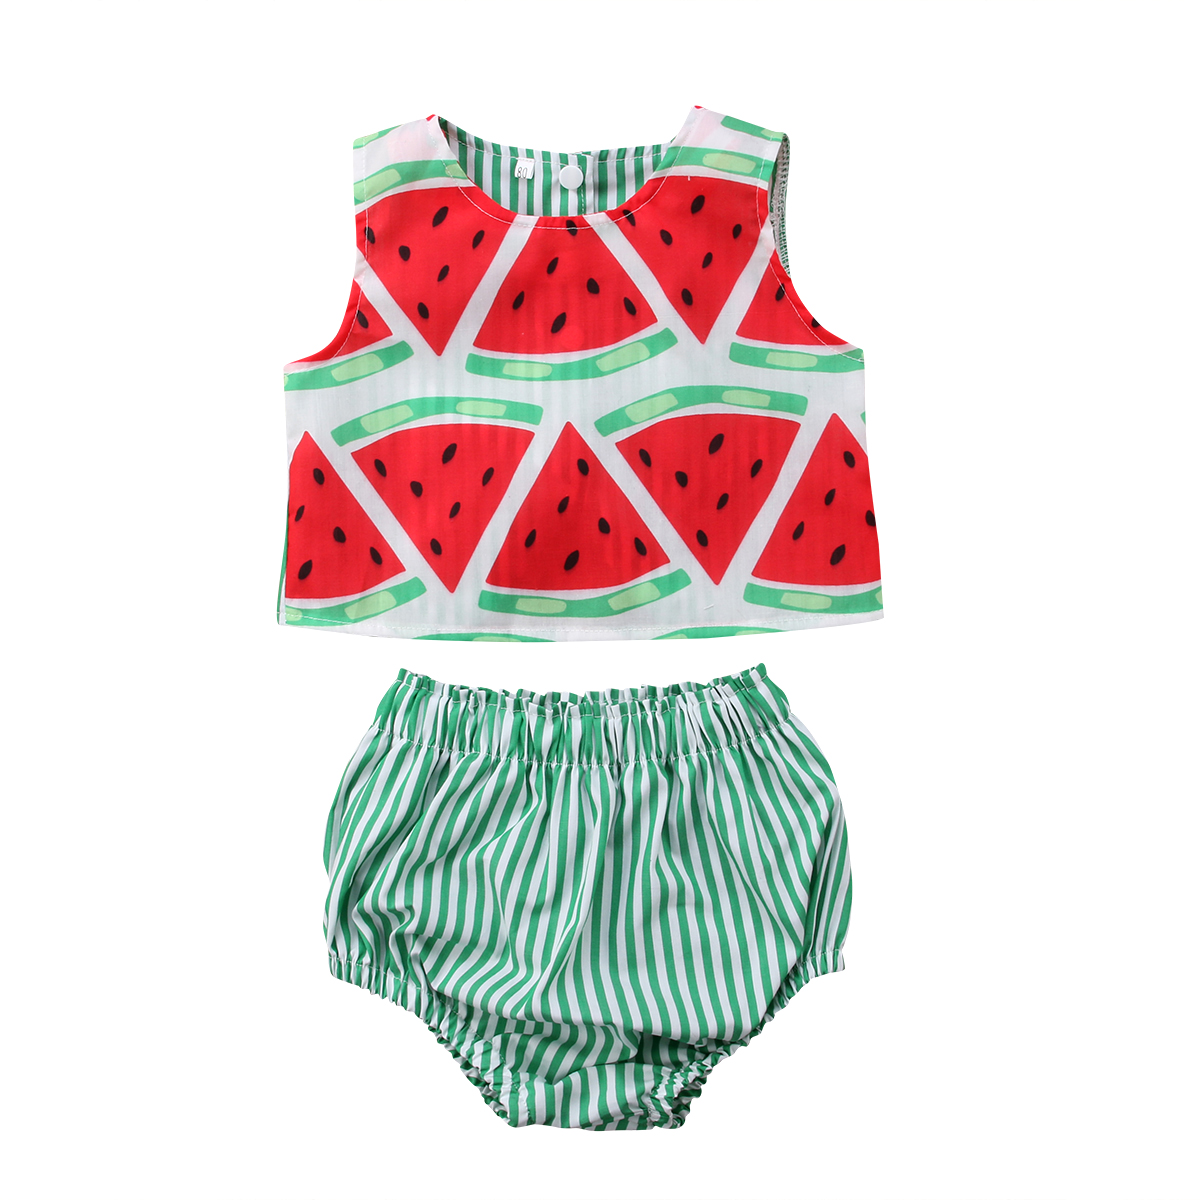 Newborn Kids Watermelon Clothing Set Baby Girl Crop Tops+Striped Short Summer Boho Outfit Clothes 2PCS Set